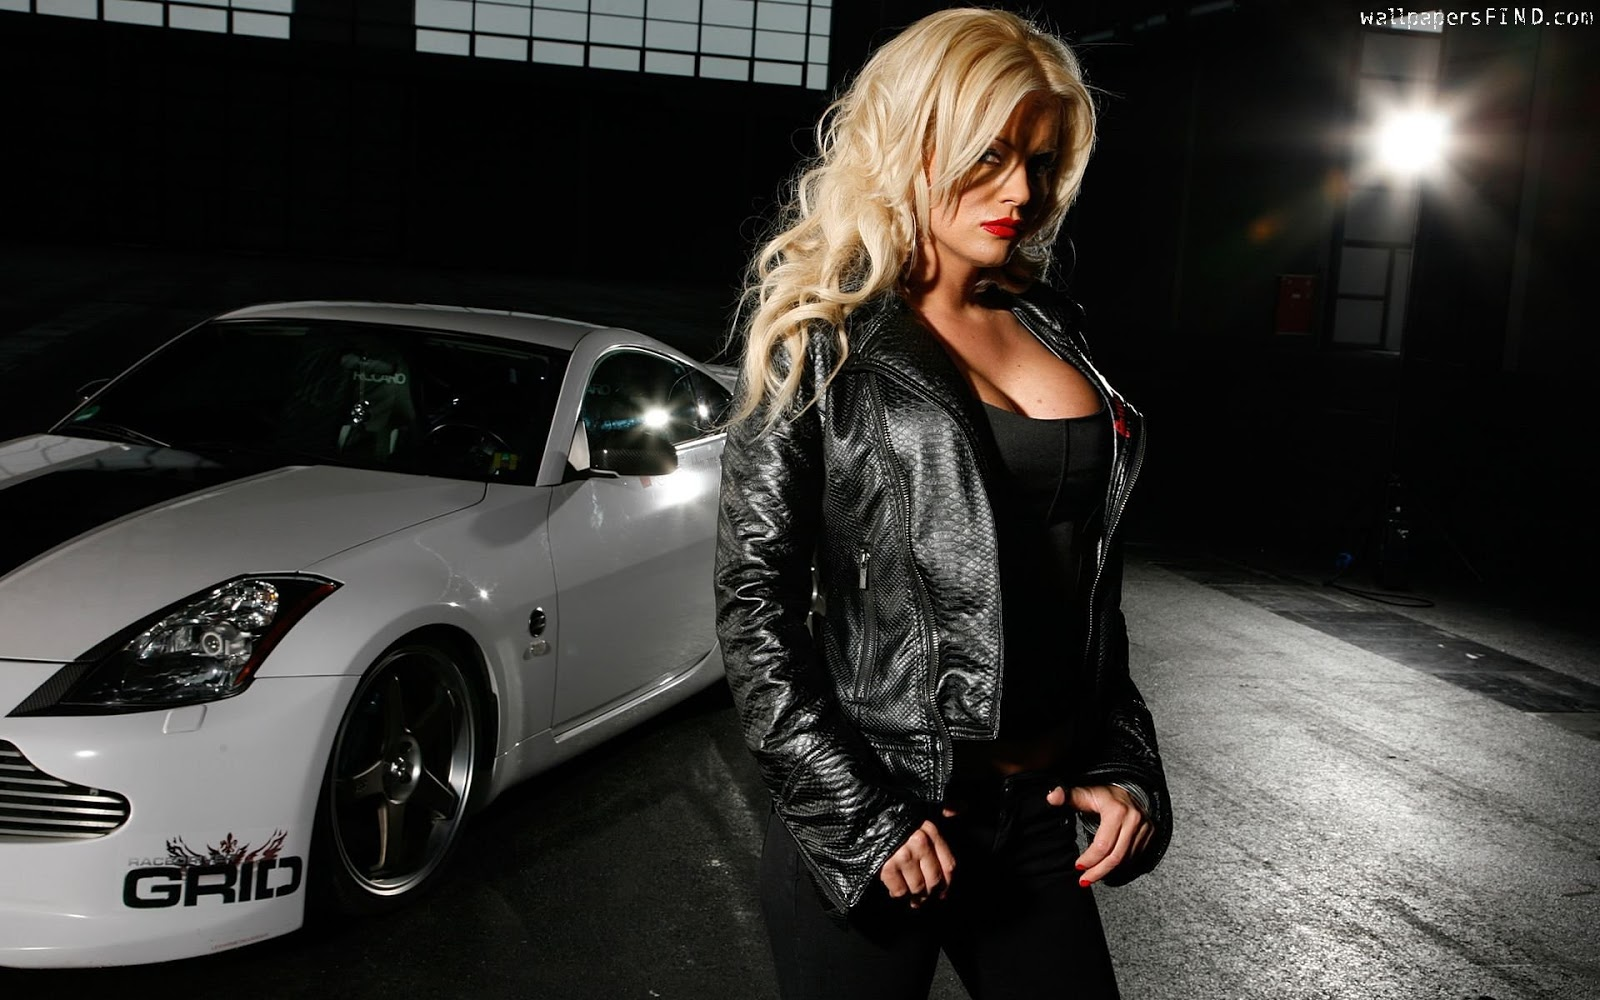 Hot Cars Wallpapers